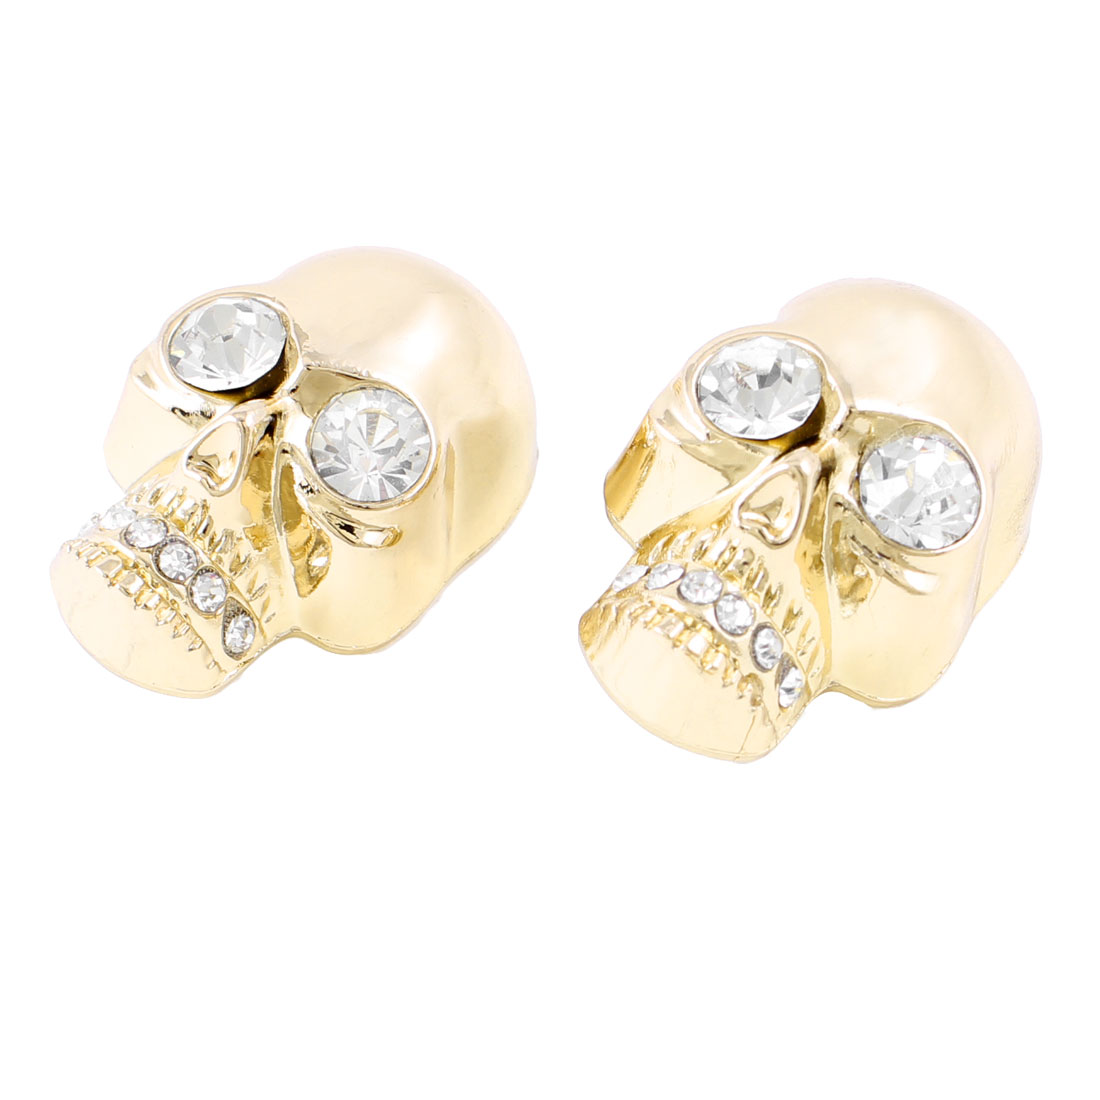 Rhinestone Coated Skull Heads Design Shoe Clips 2 Pcs Gold Tone